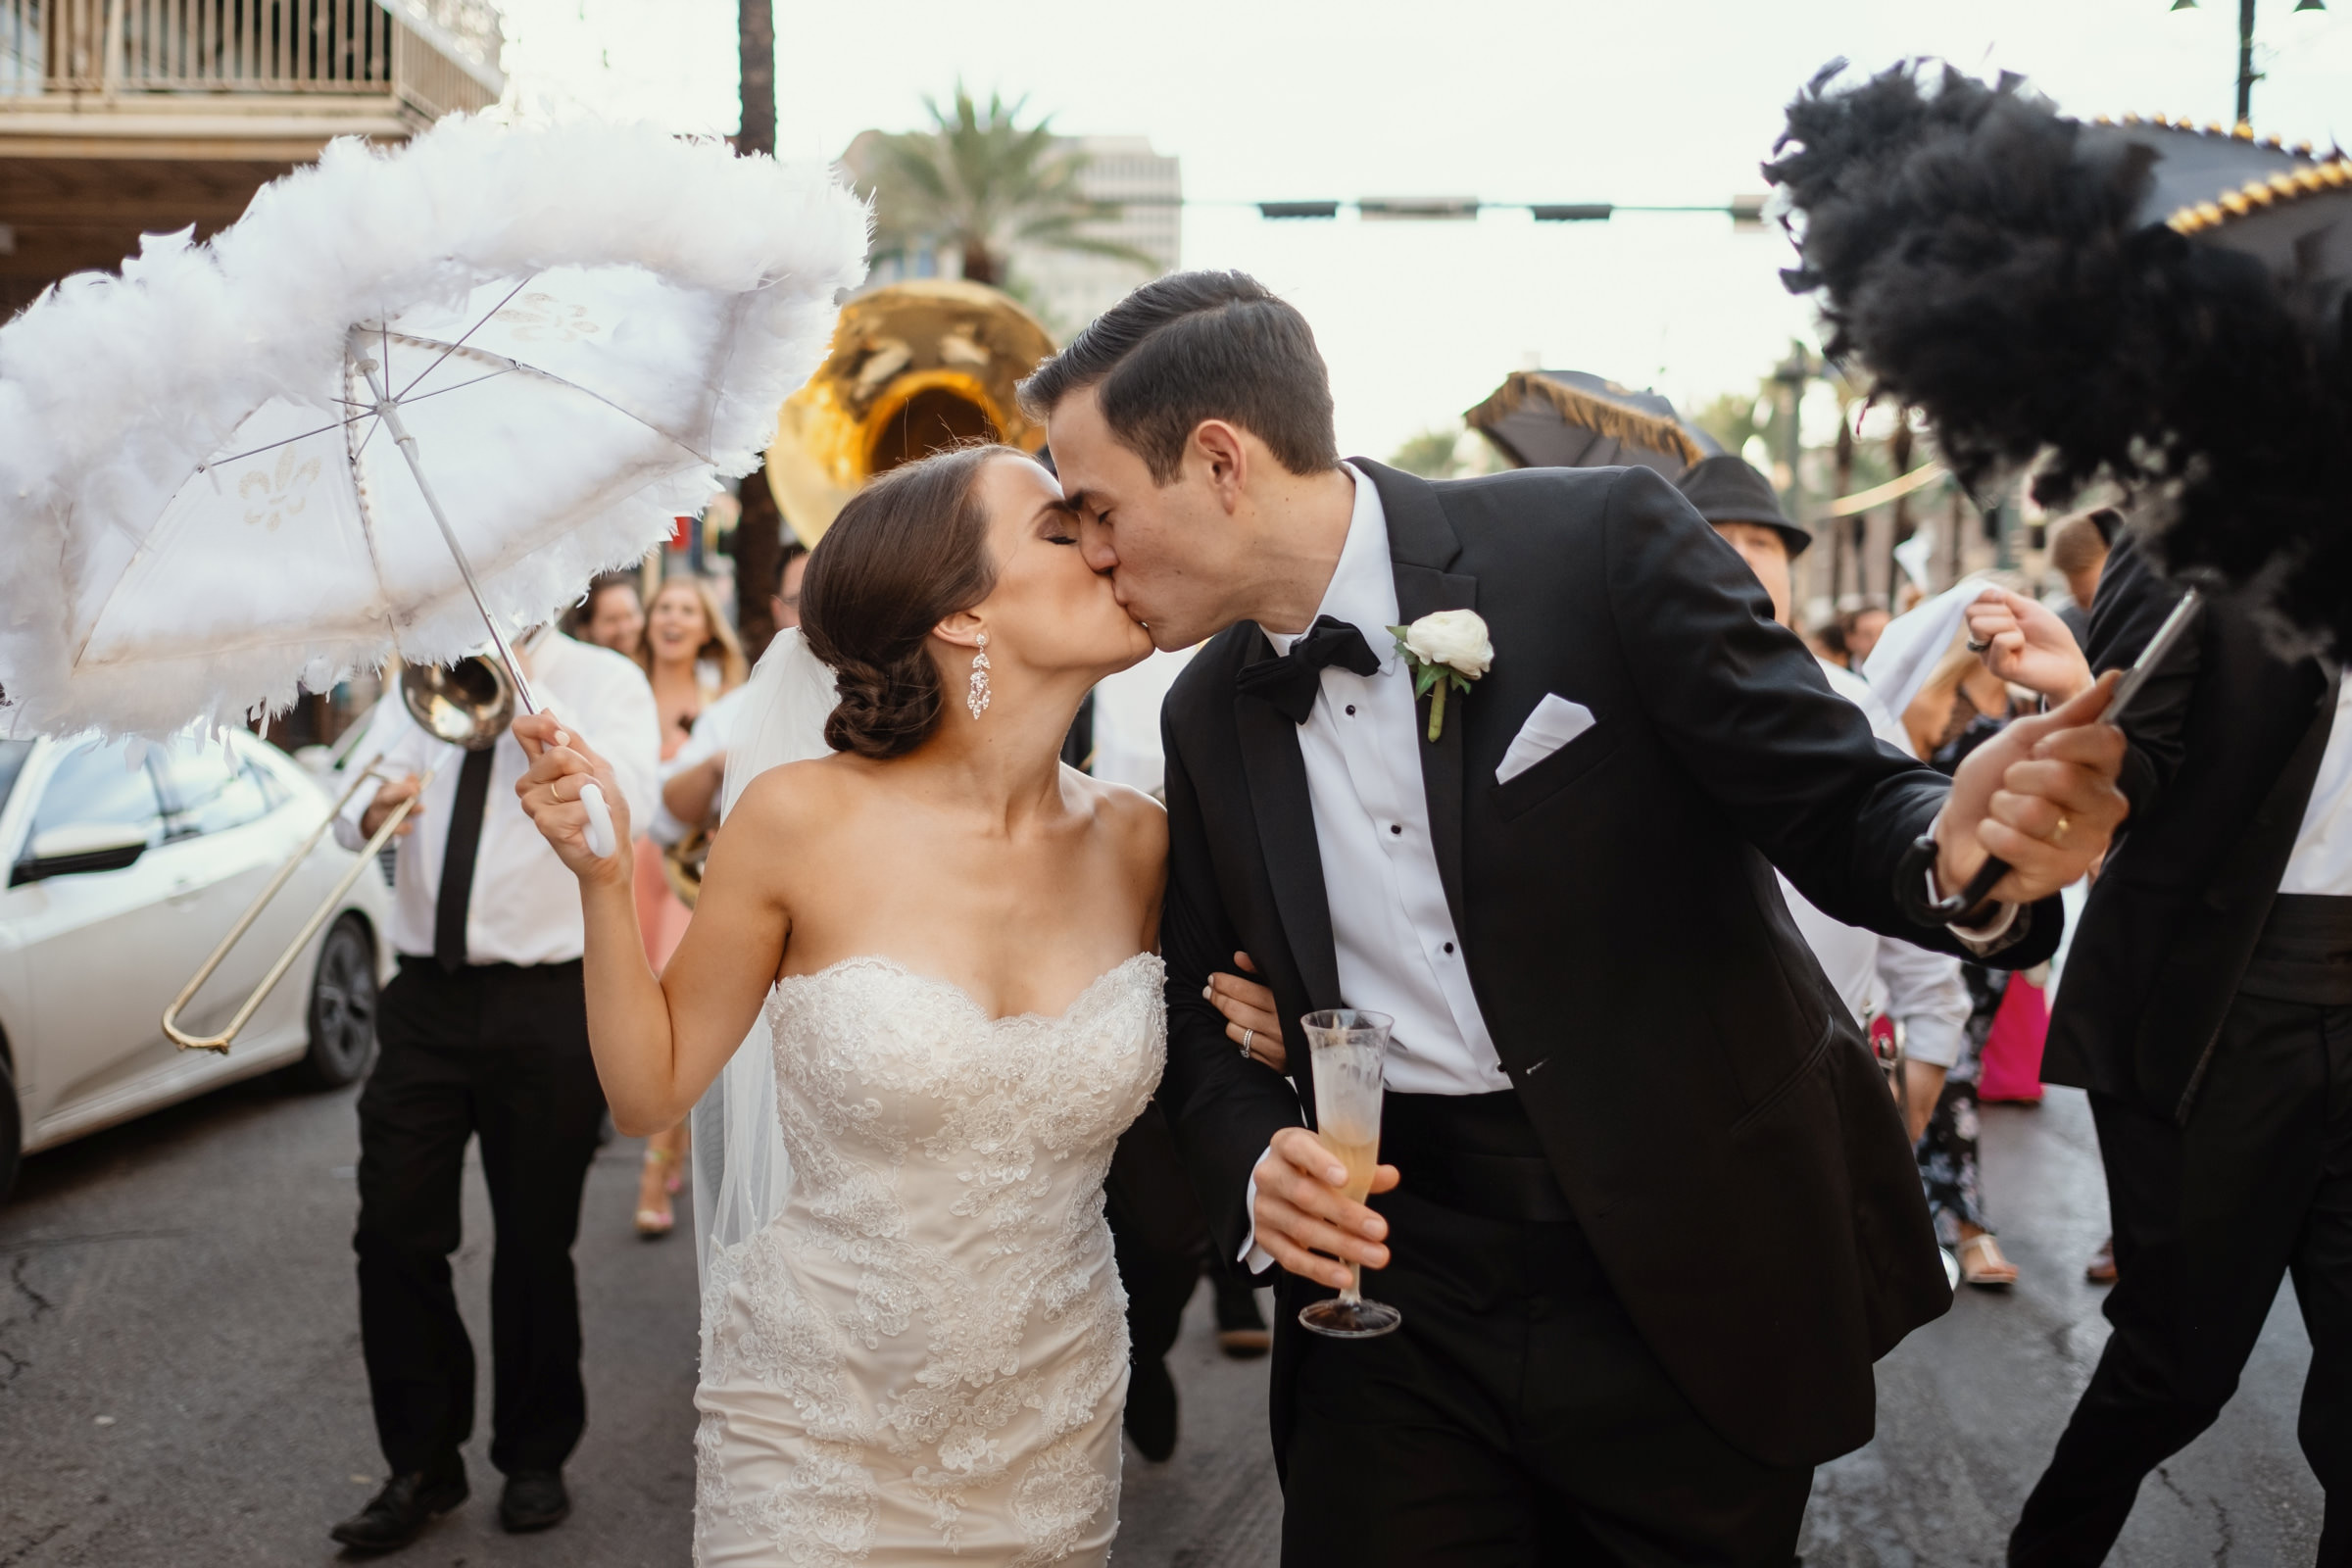 bride and groom  in a wedding parade having a sweet kiss-new orleans-austin-houston-wedding photographer- photo by Dark Roux